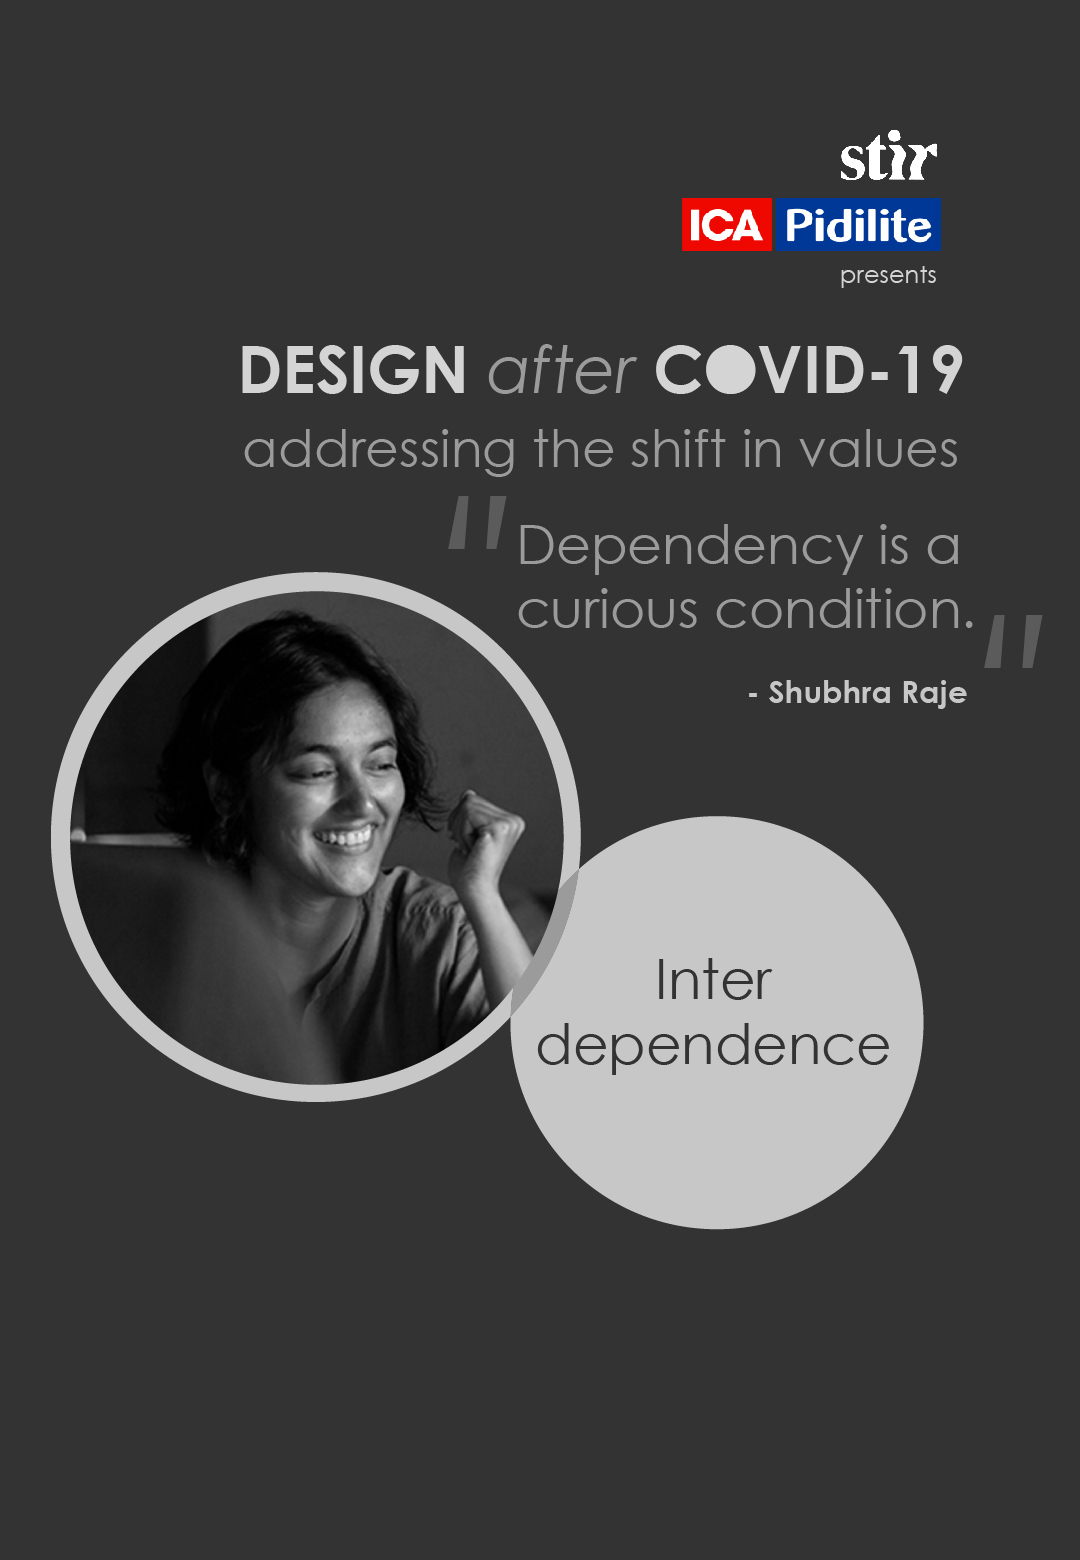 Indian architect Shubhra Raje on ecology, paradox, interdependence and self-sufficiency | Shubhra Raje | Design After COVID-19 | STIRworld